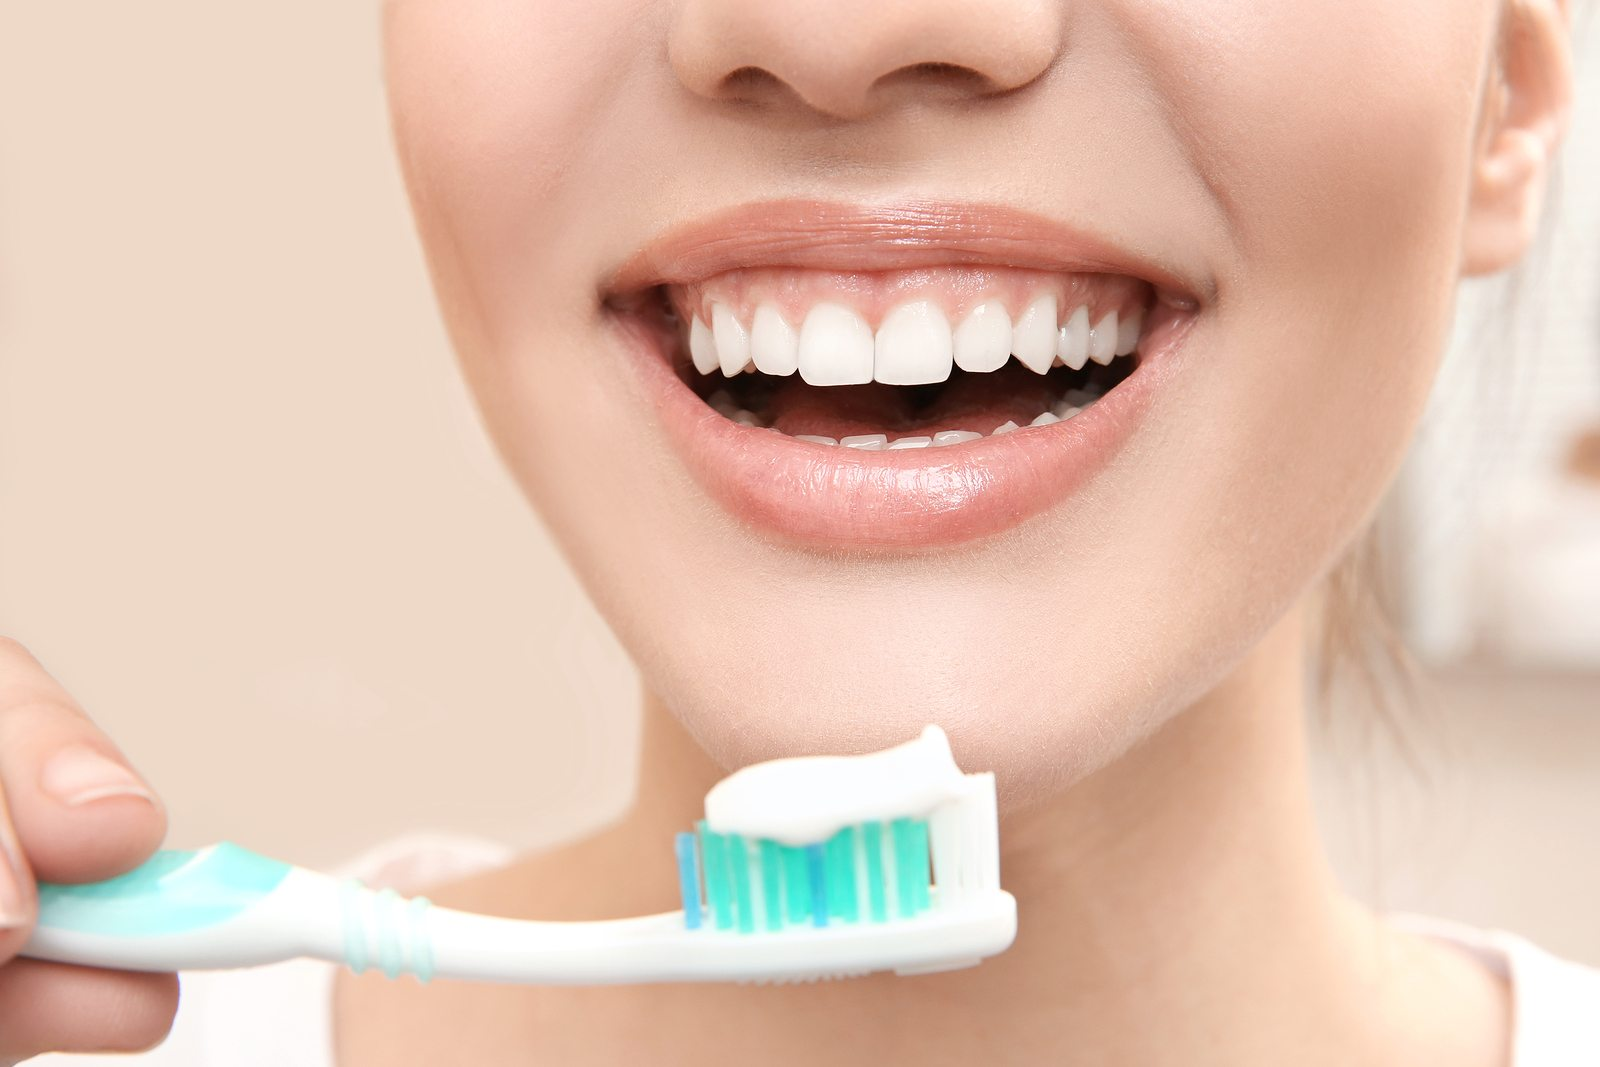 5 Tips For Brushing Your Teeth